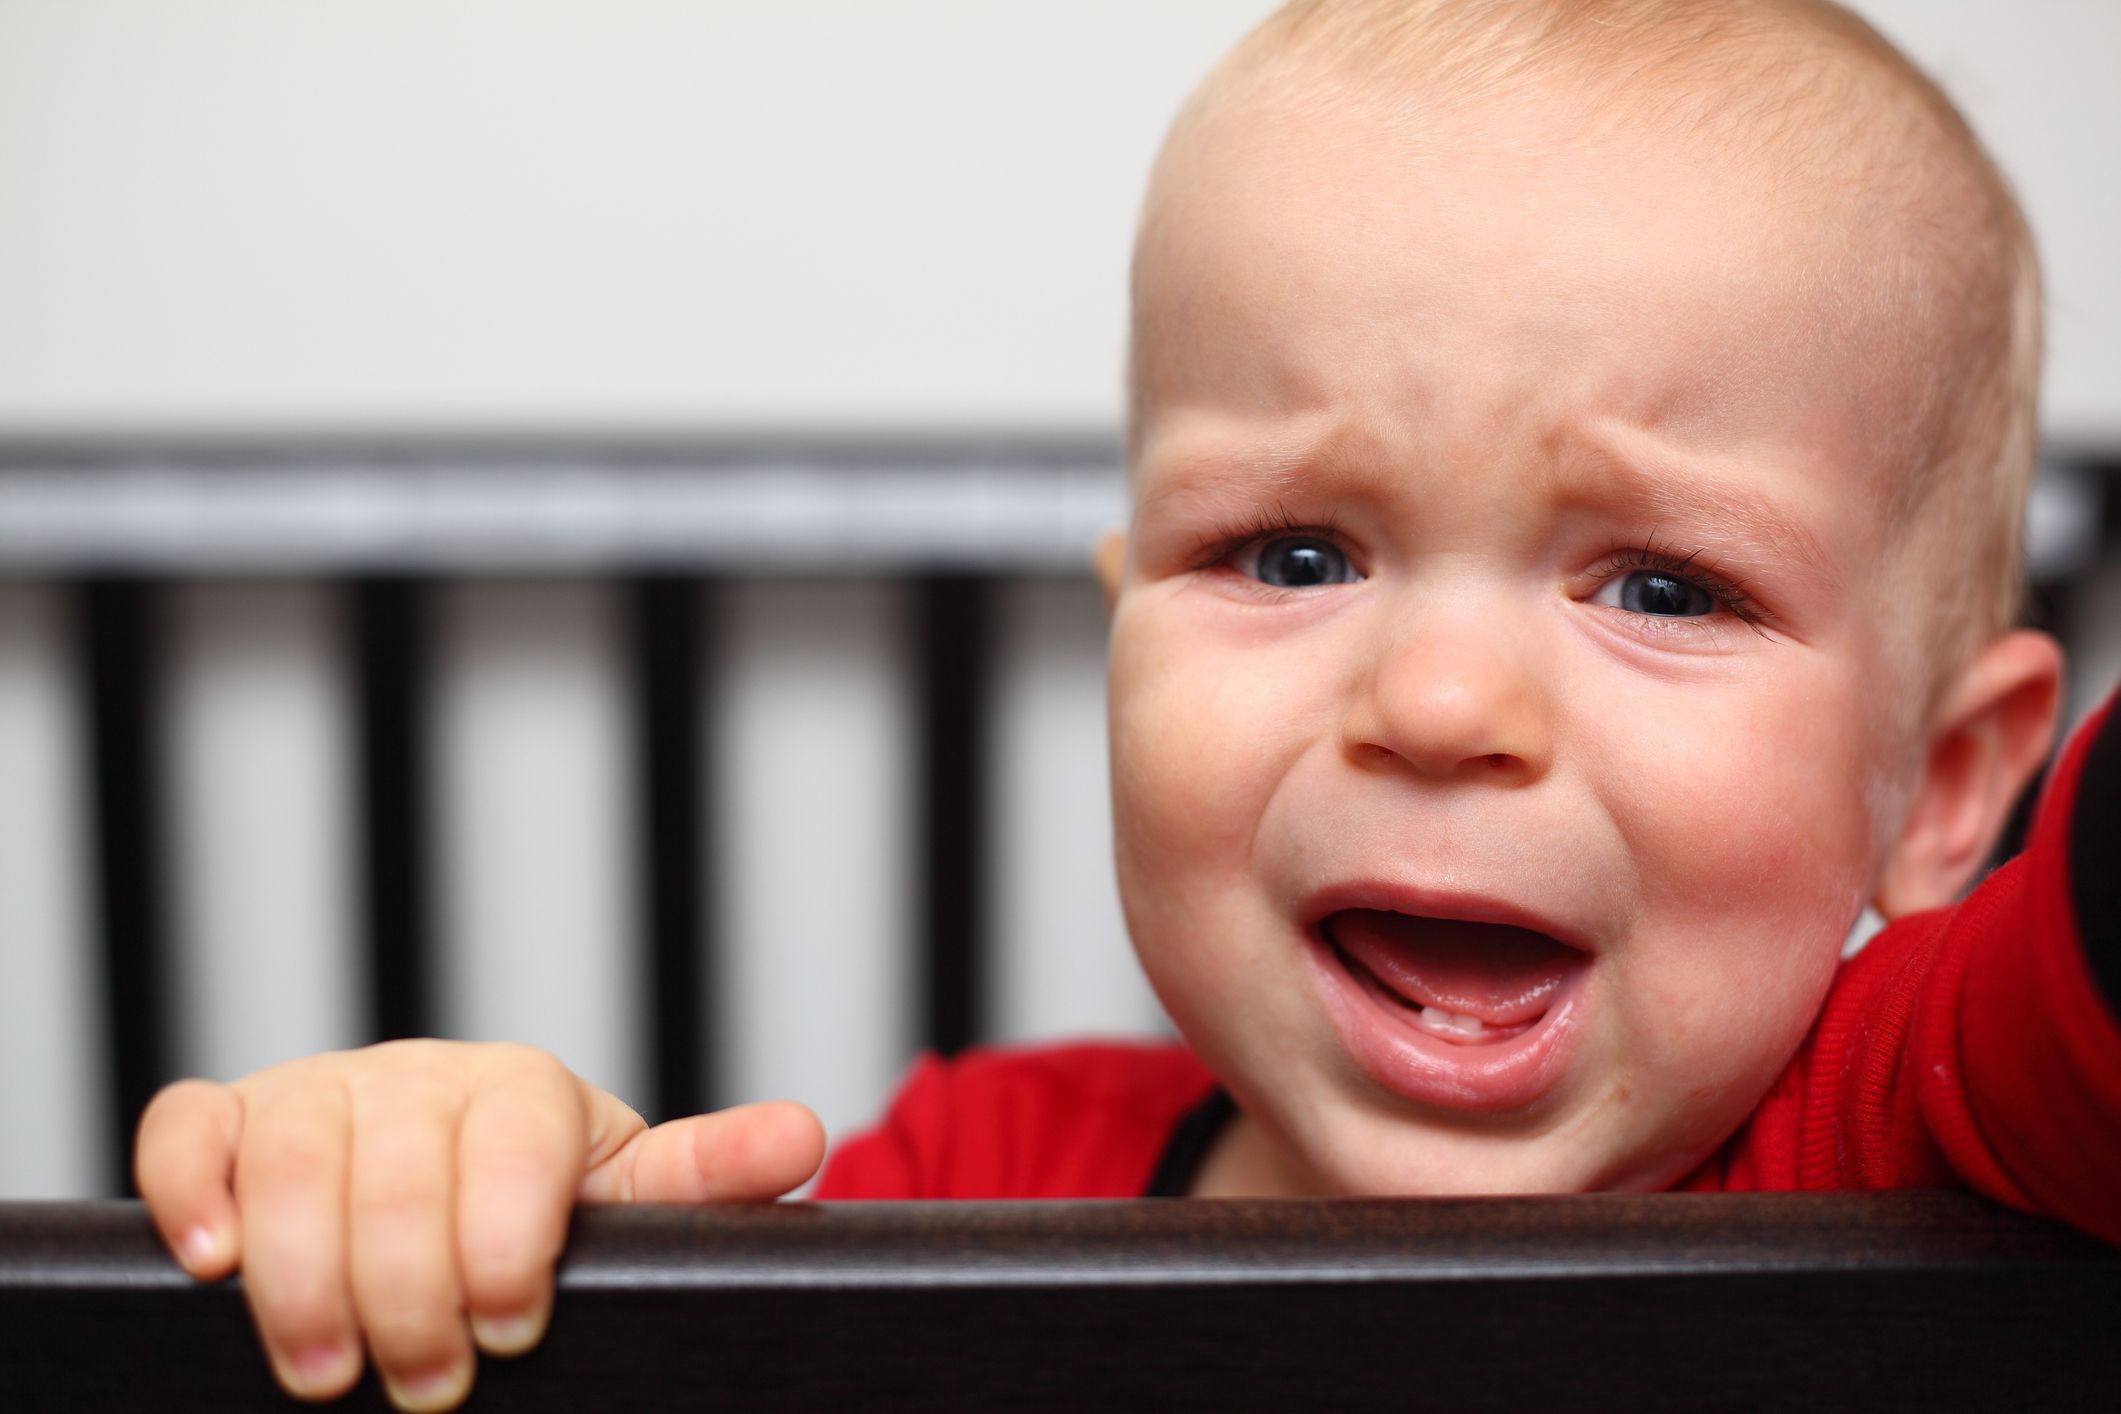 Should you let your baby cry it out?